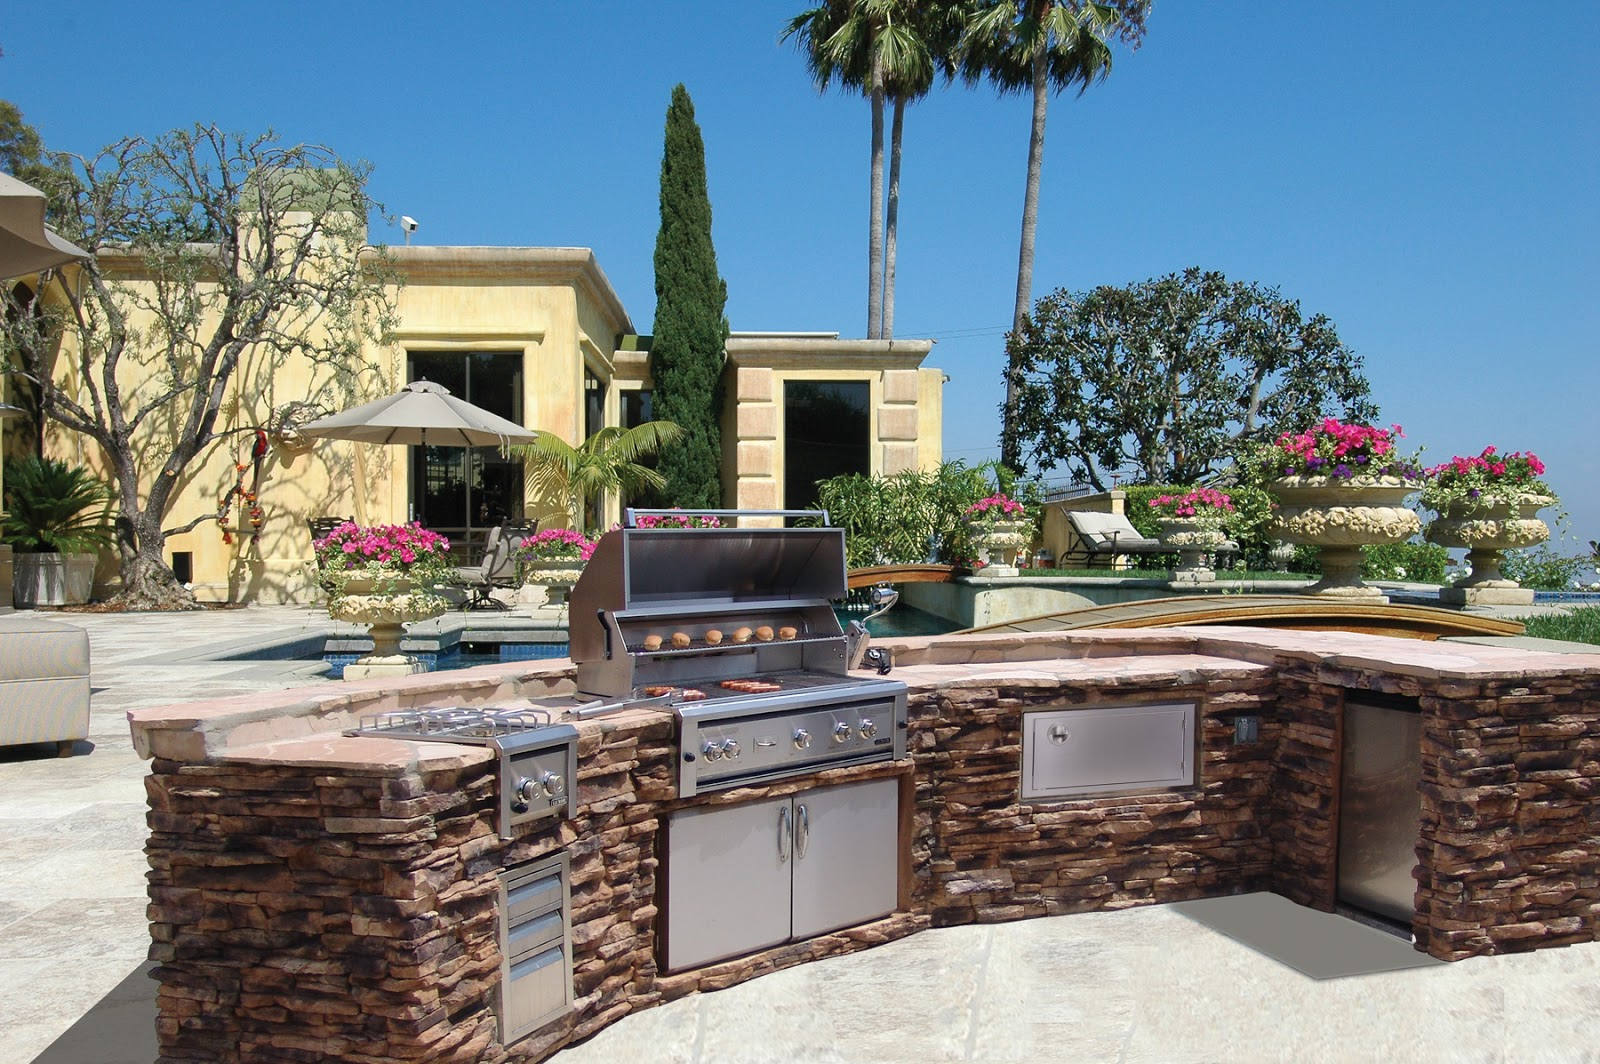 MODE CONCRETE Luxury Outdoor Kitchens